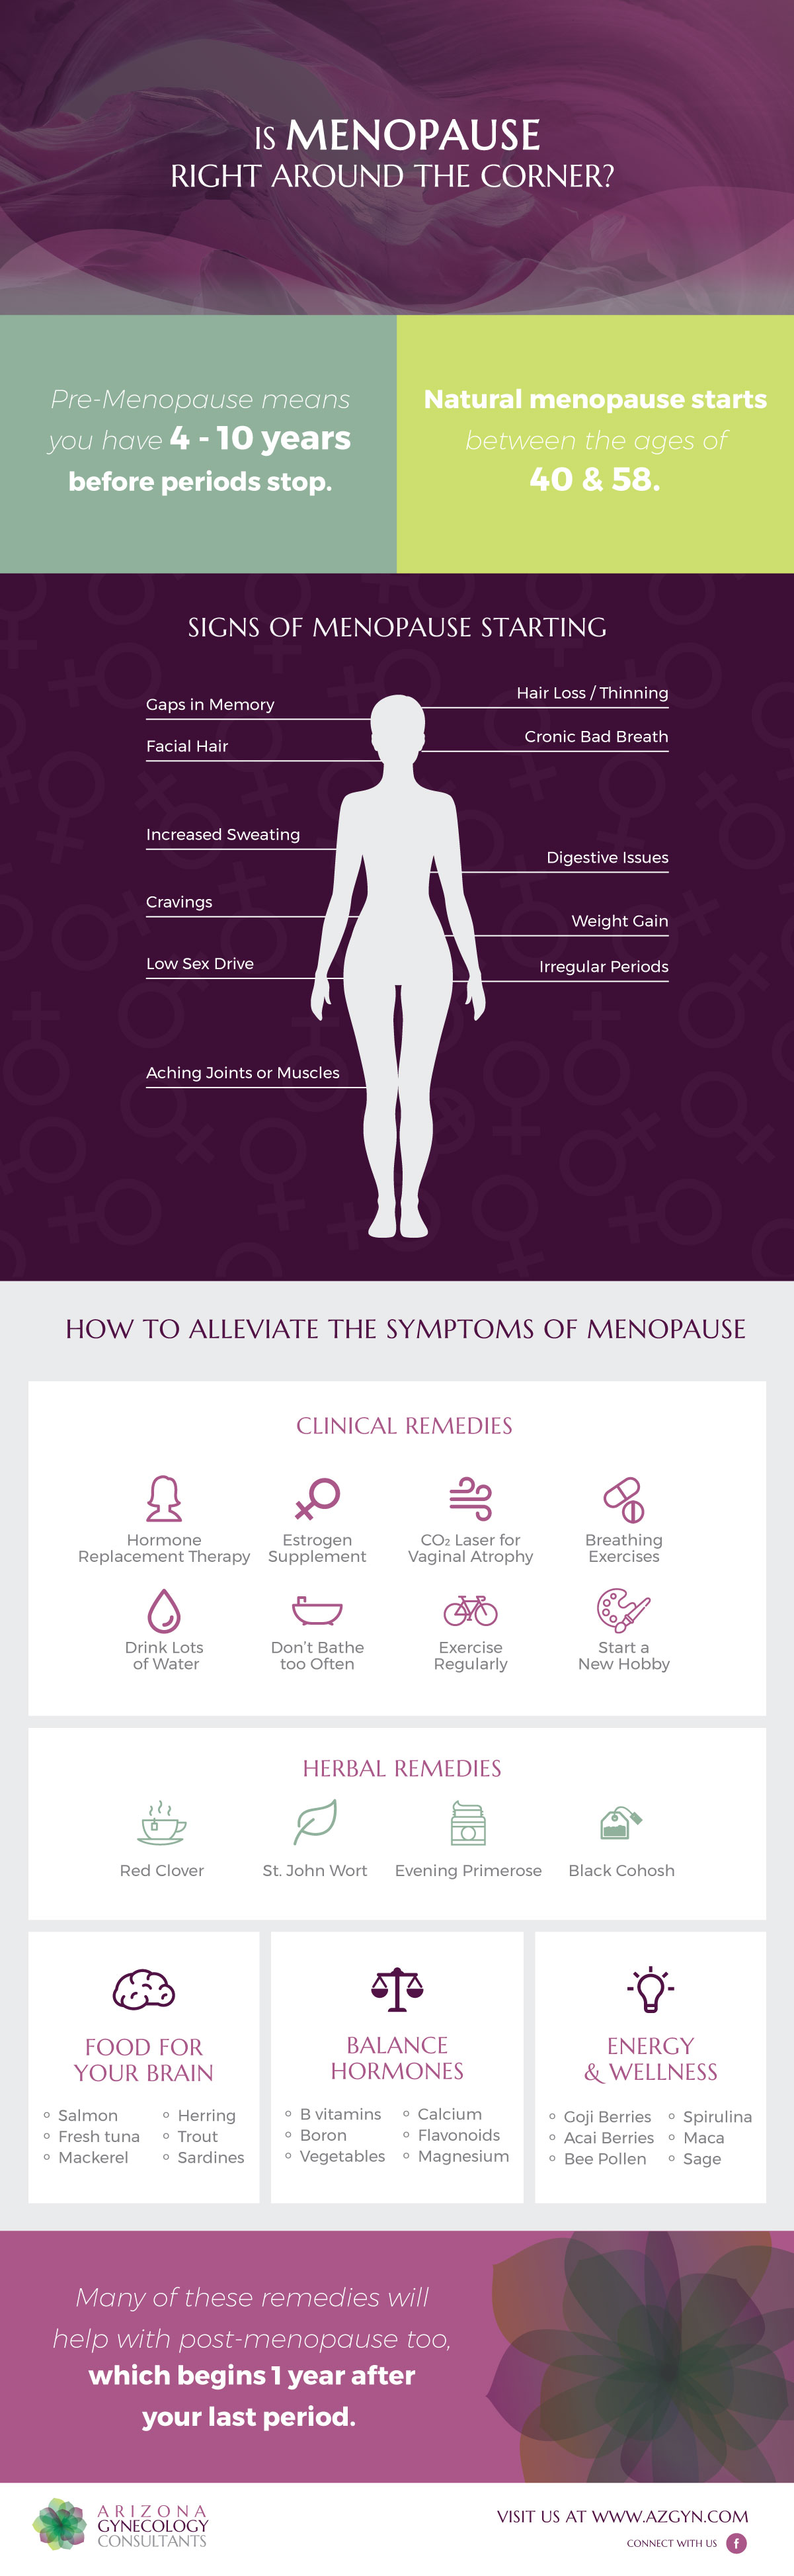 Signs Symptoms and Holistic Clinical Remedies for Menopause Infographic - Arizona Gynecology